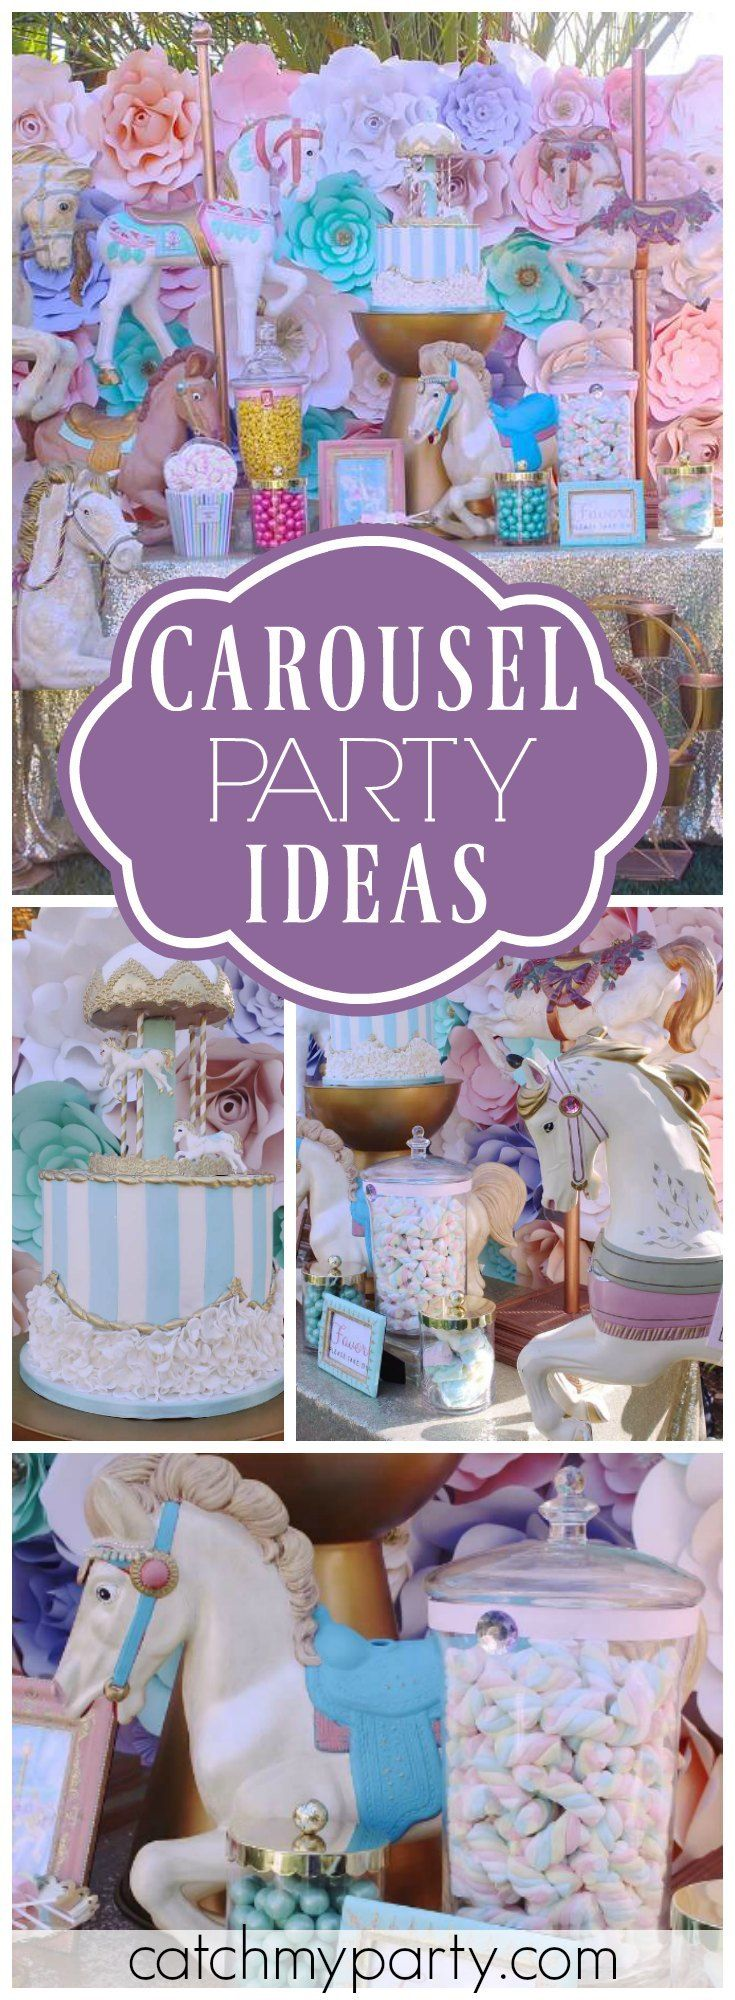 This carousel birthday party has such a pretty paper flower backdrop! See more party ideas at Catchmyparty.com!